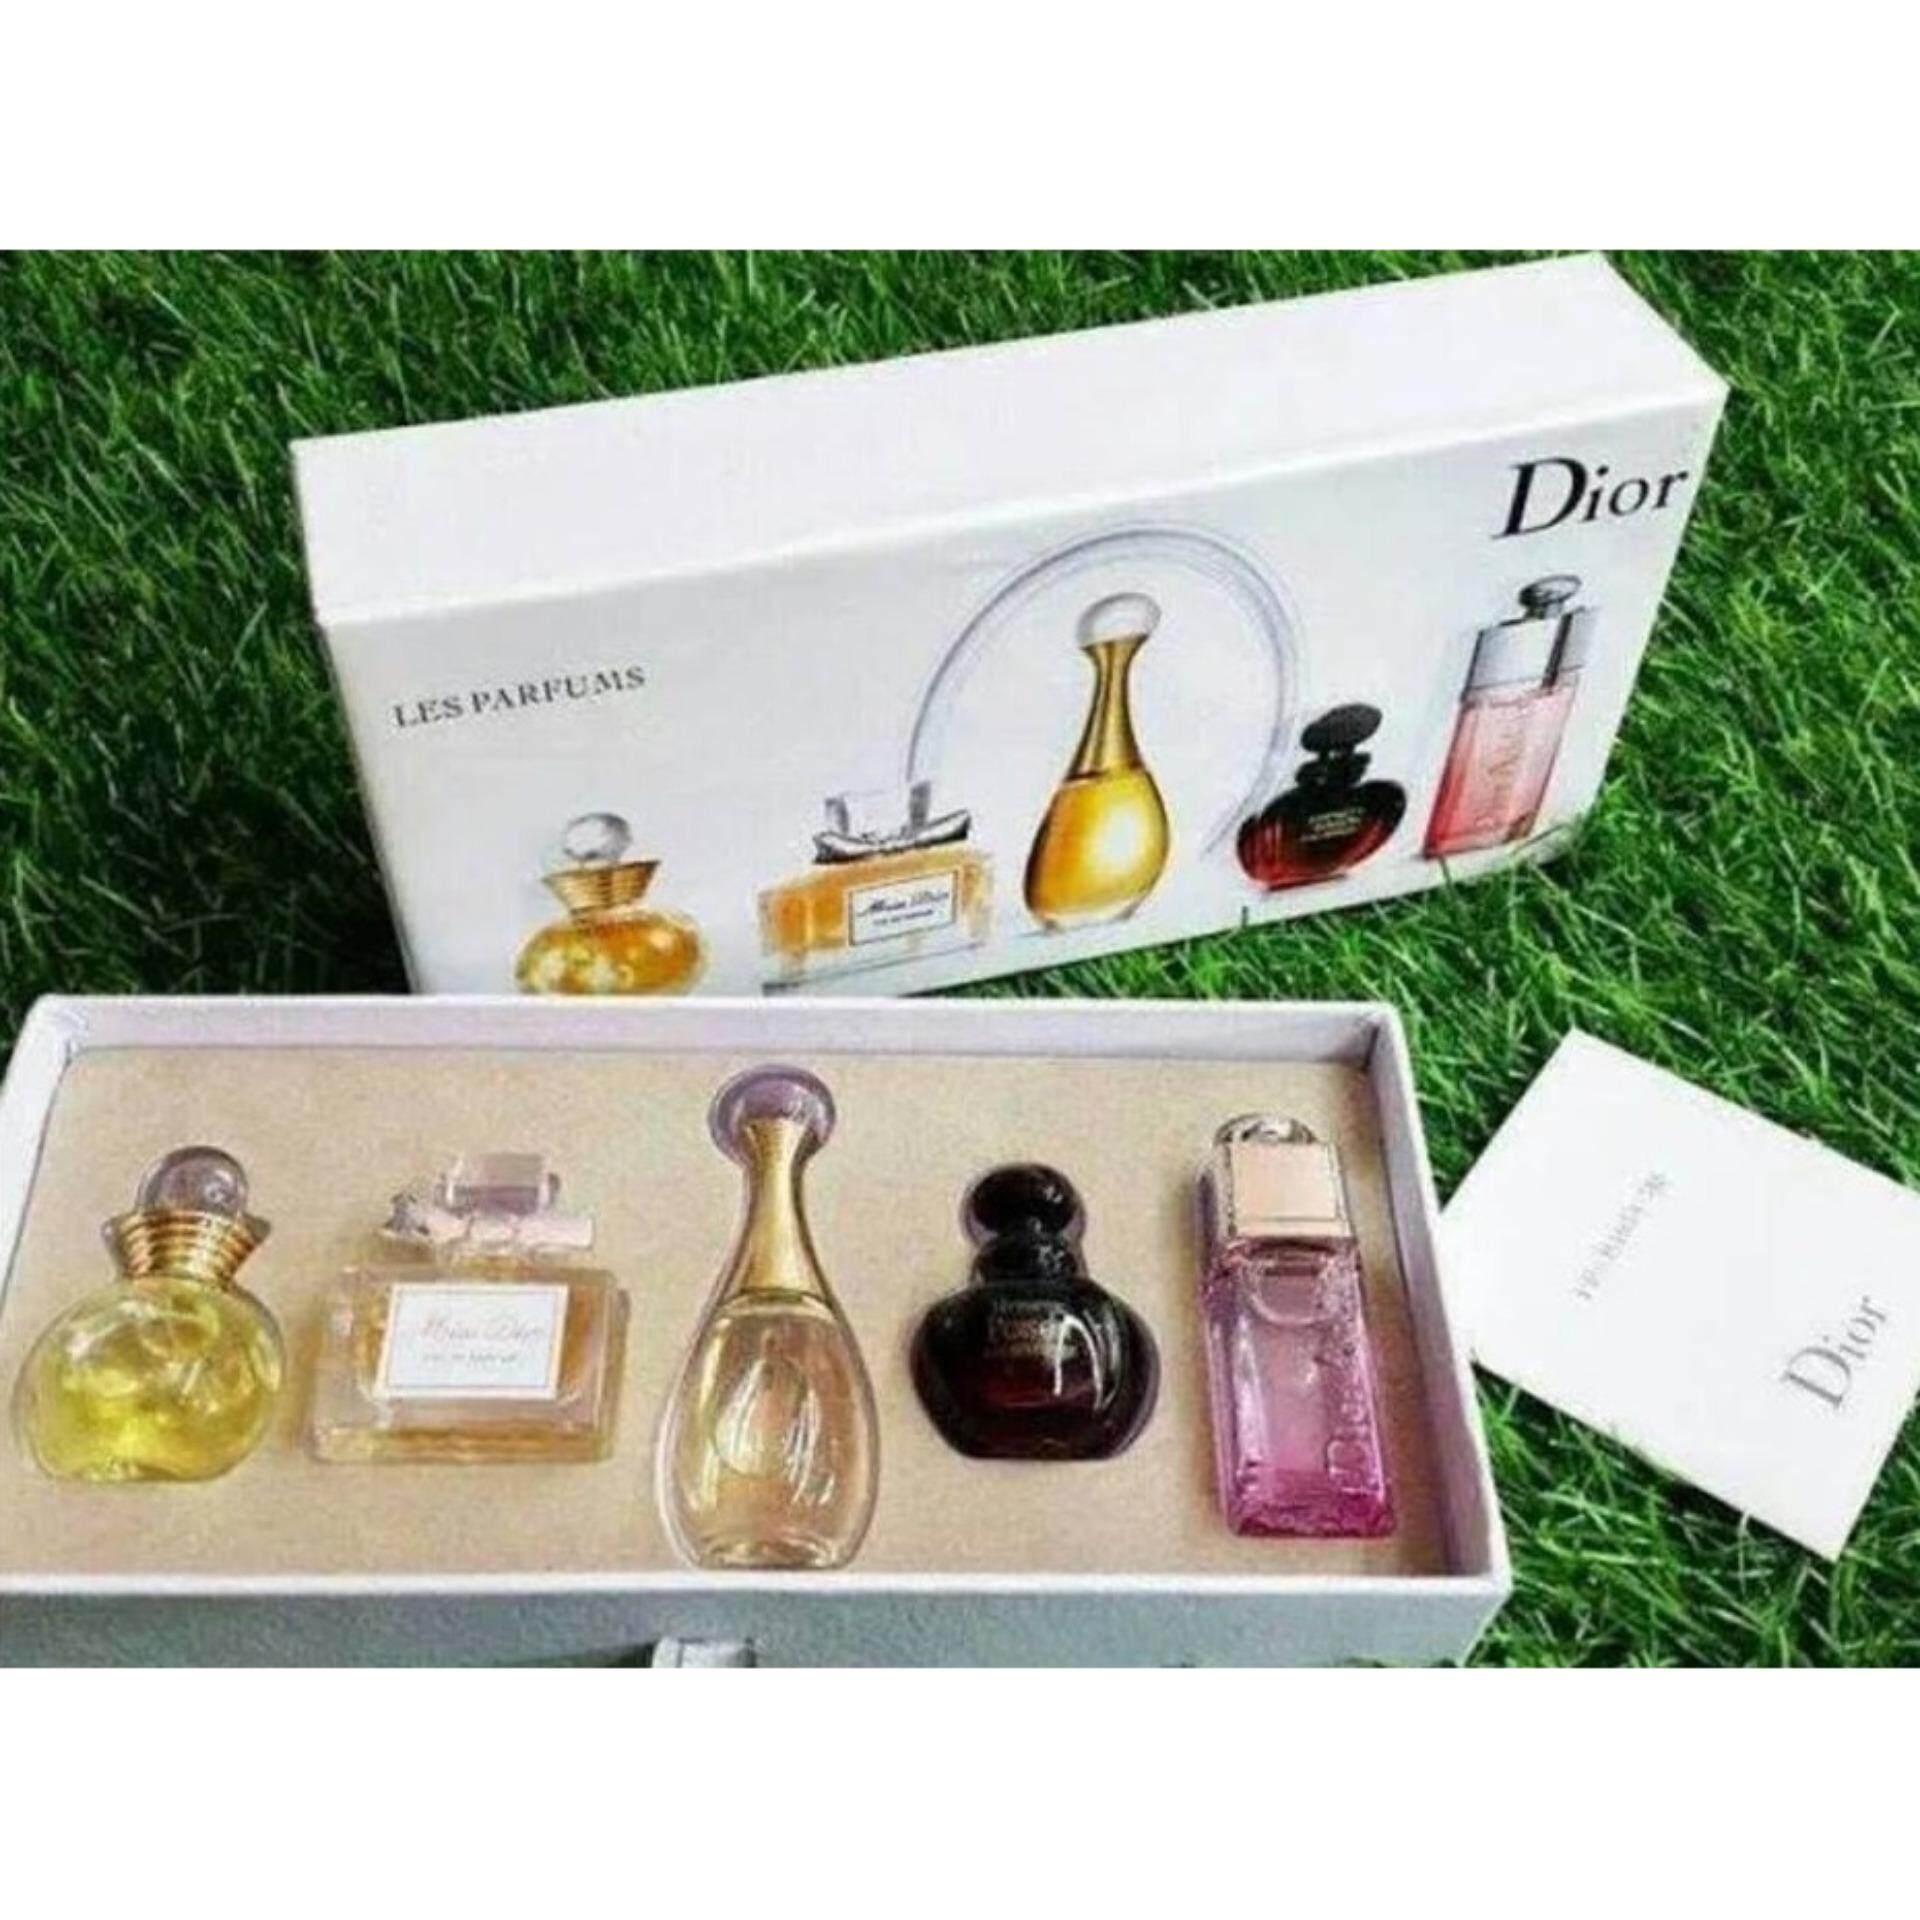 Christian Dior 5 in 1 Perfume Miniature Set- Imported Sets (Clearance Way Way Below Cost )